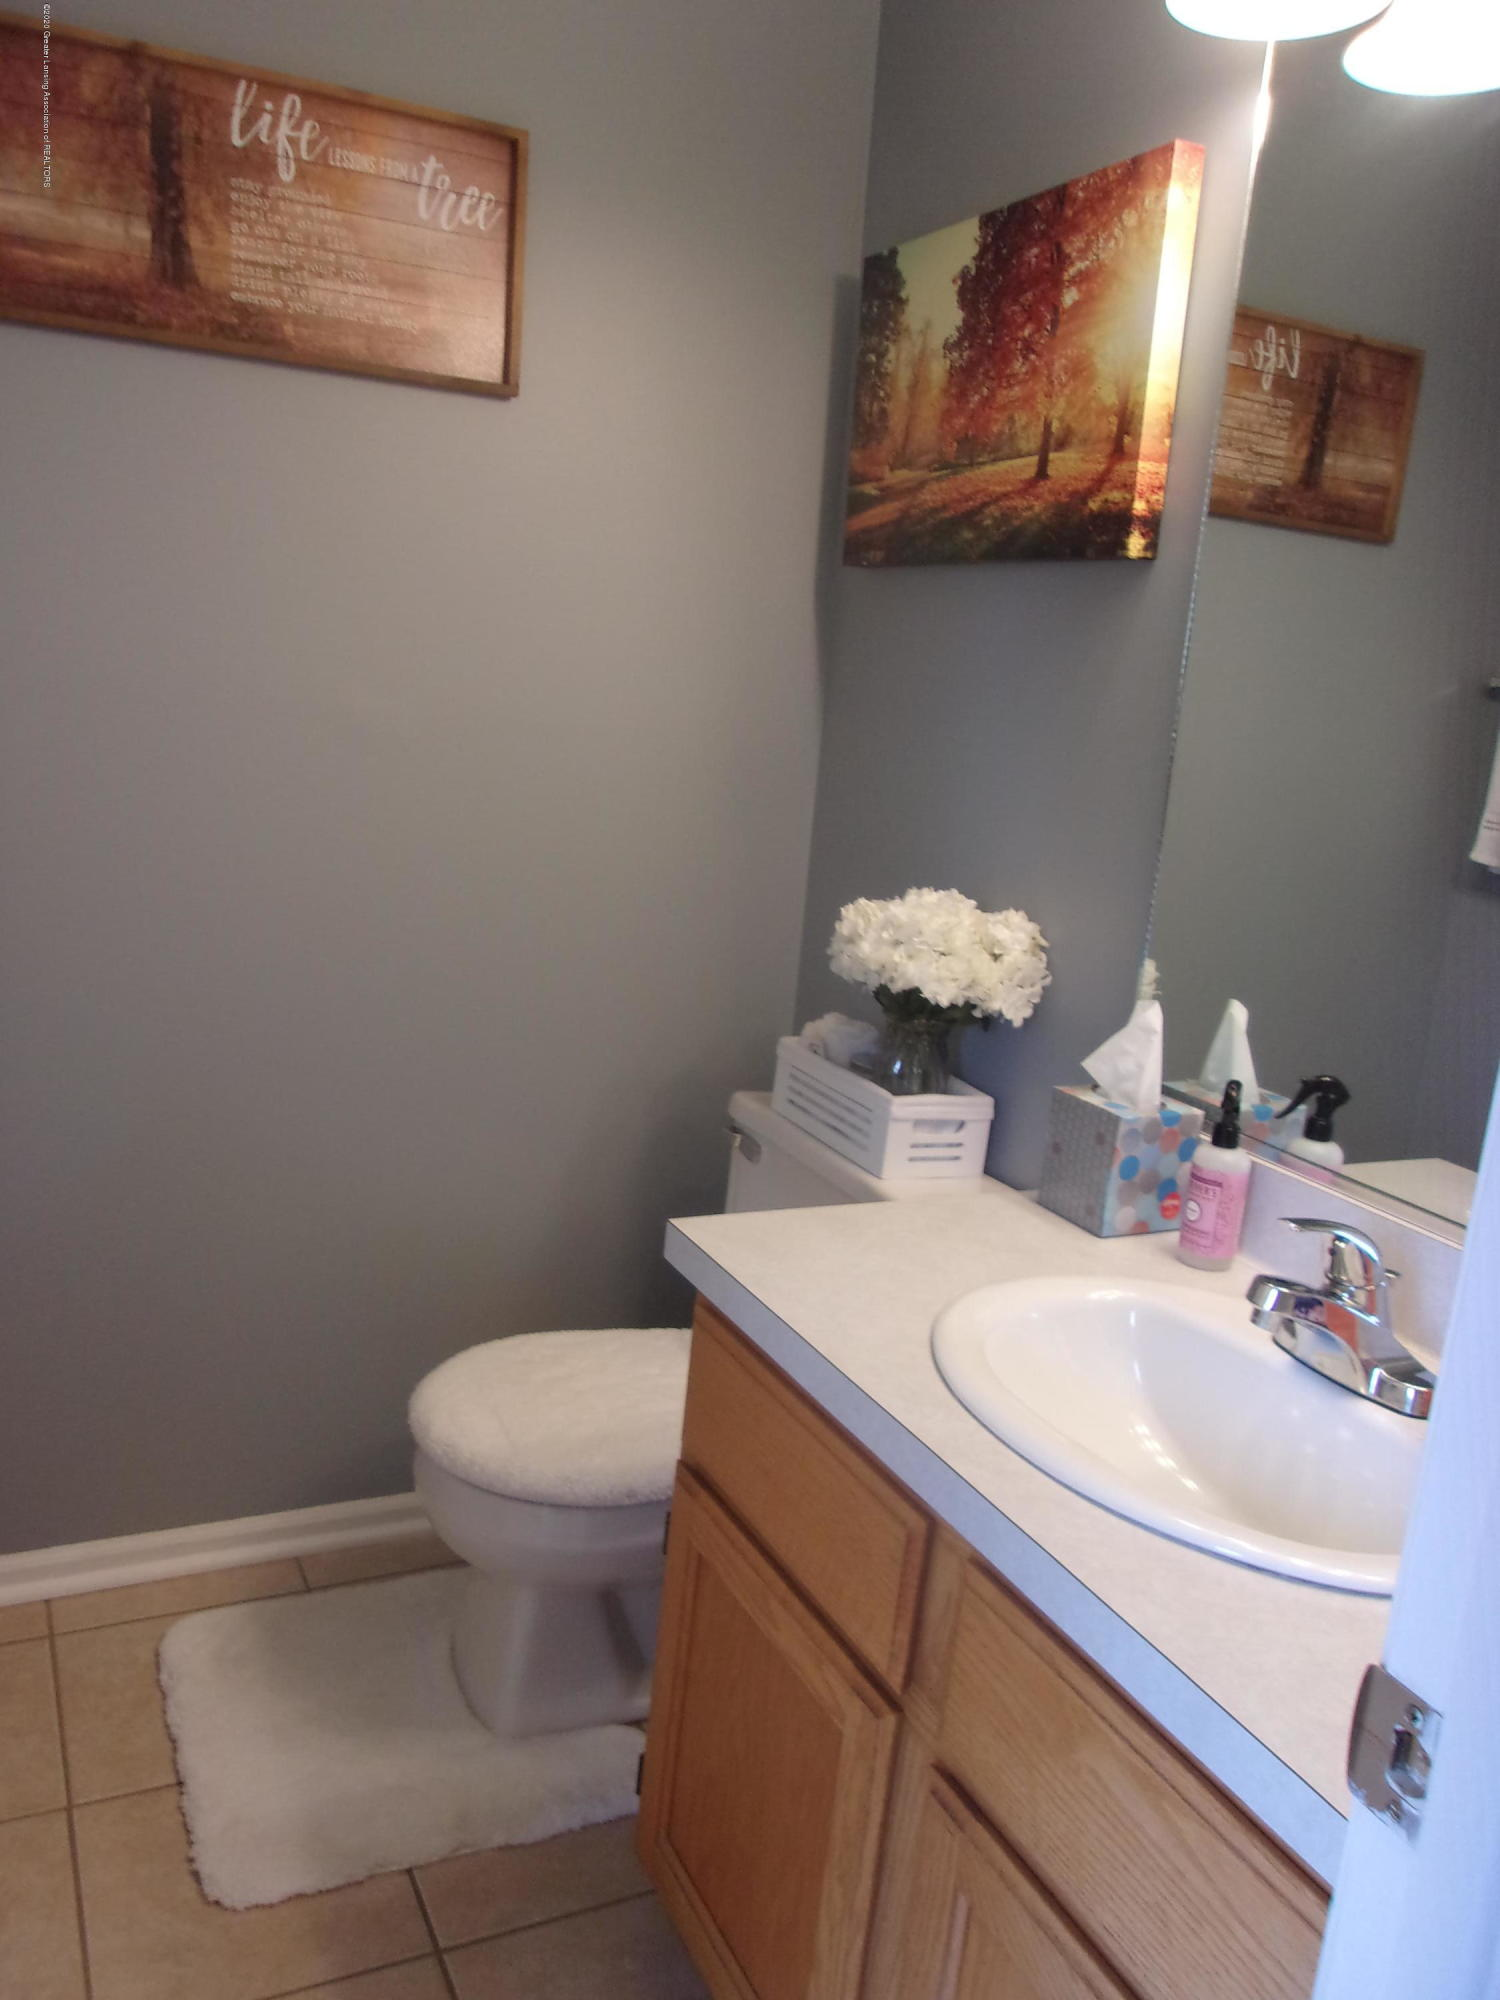 3991 Windy Heights Dr - 100_0991 - 23